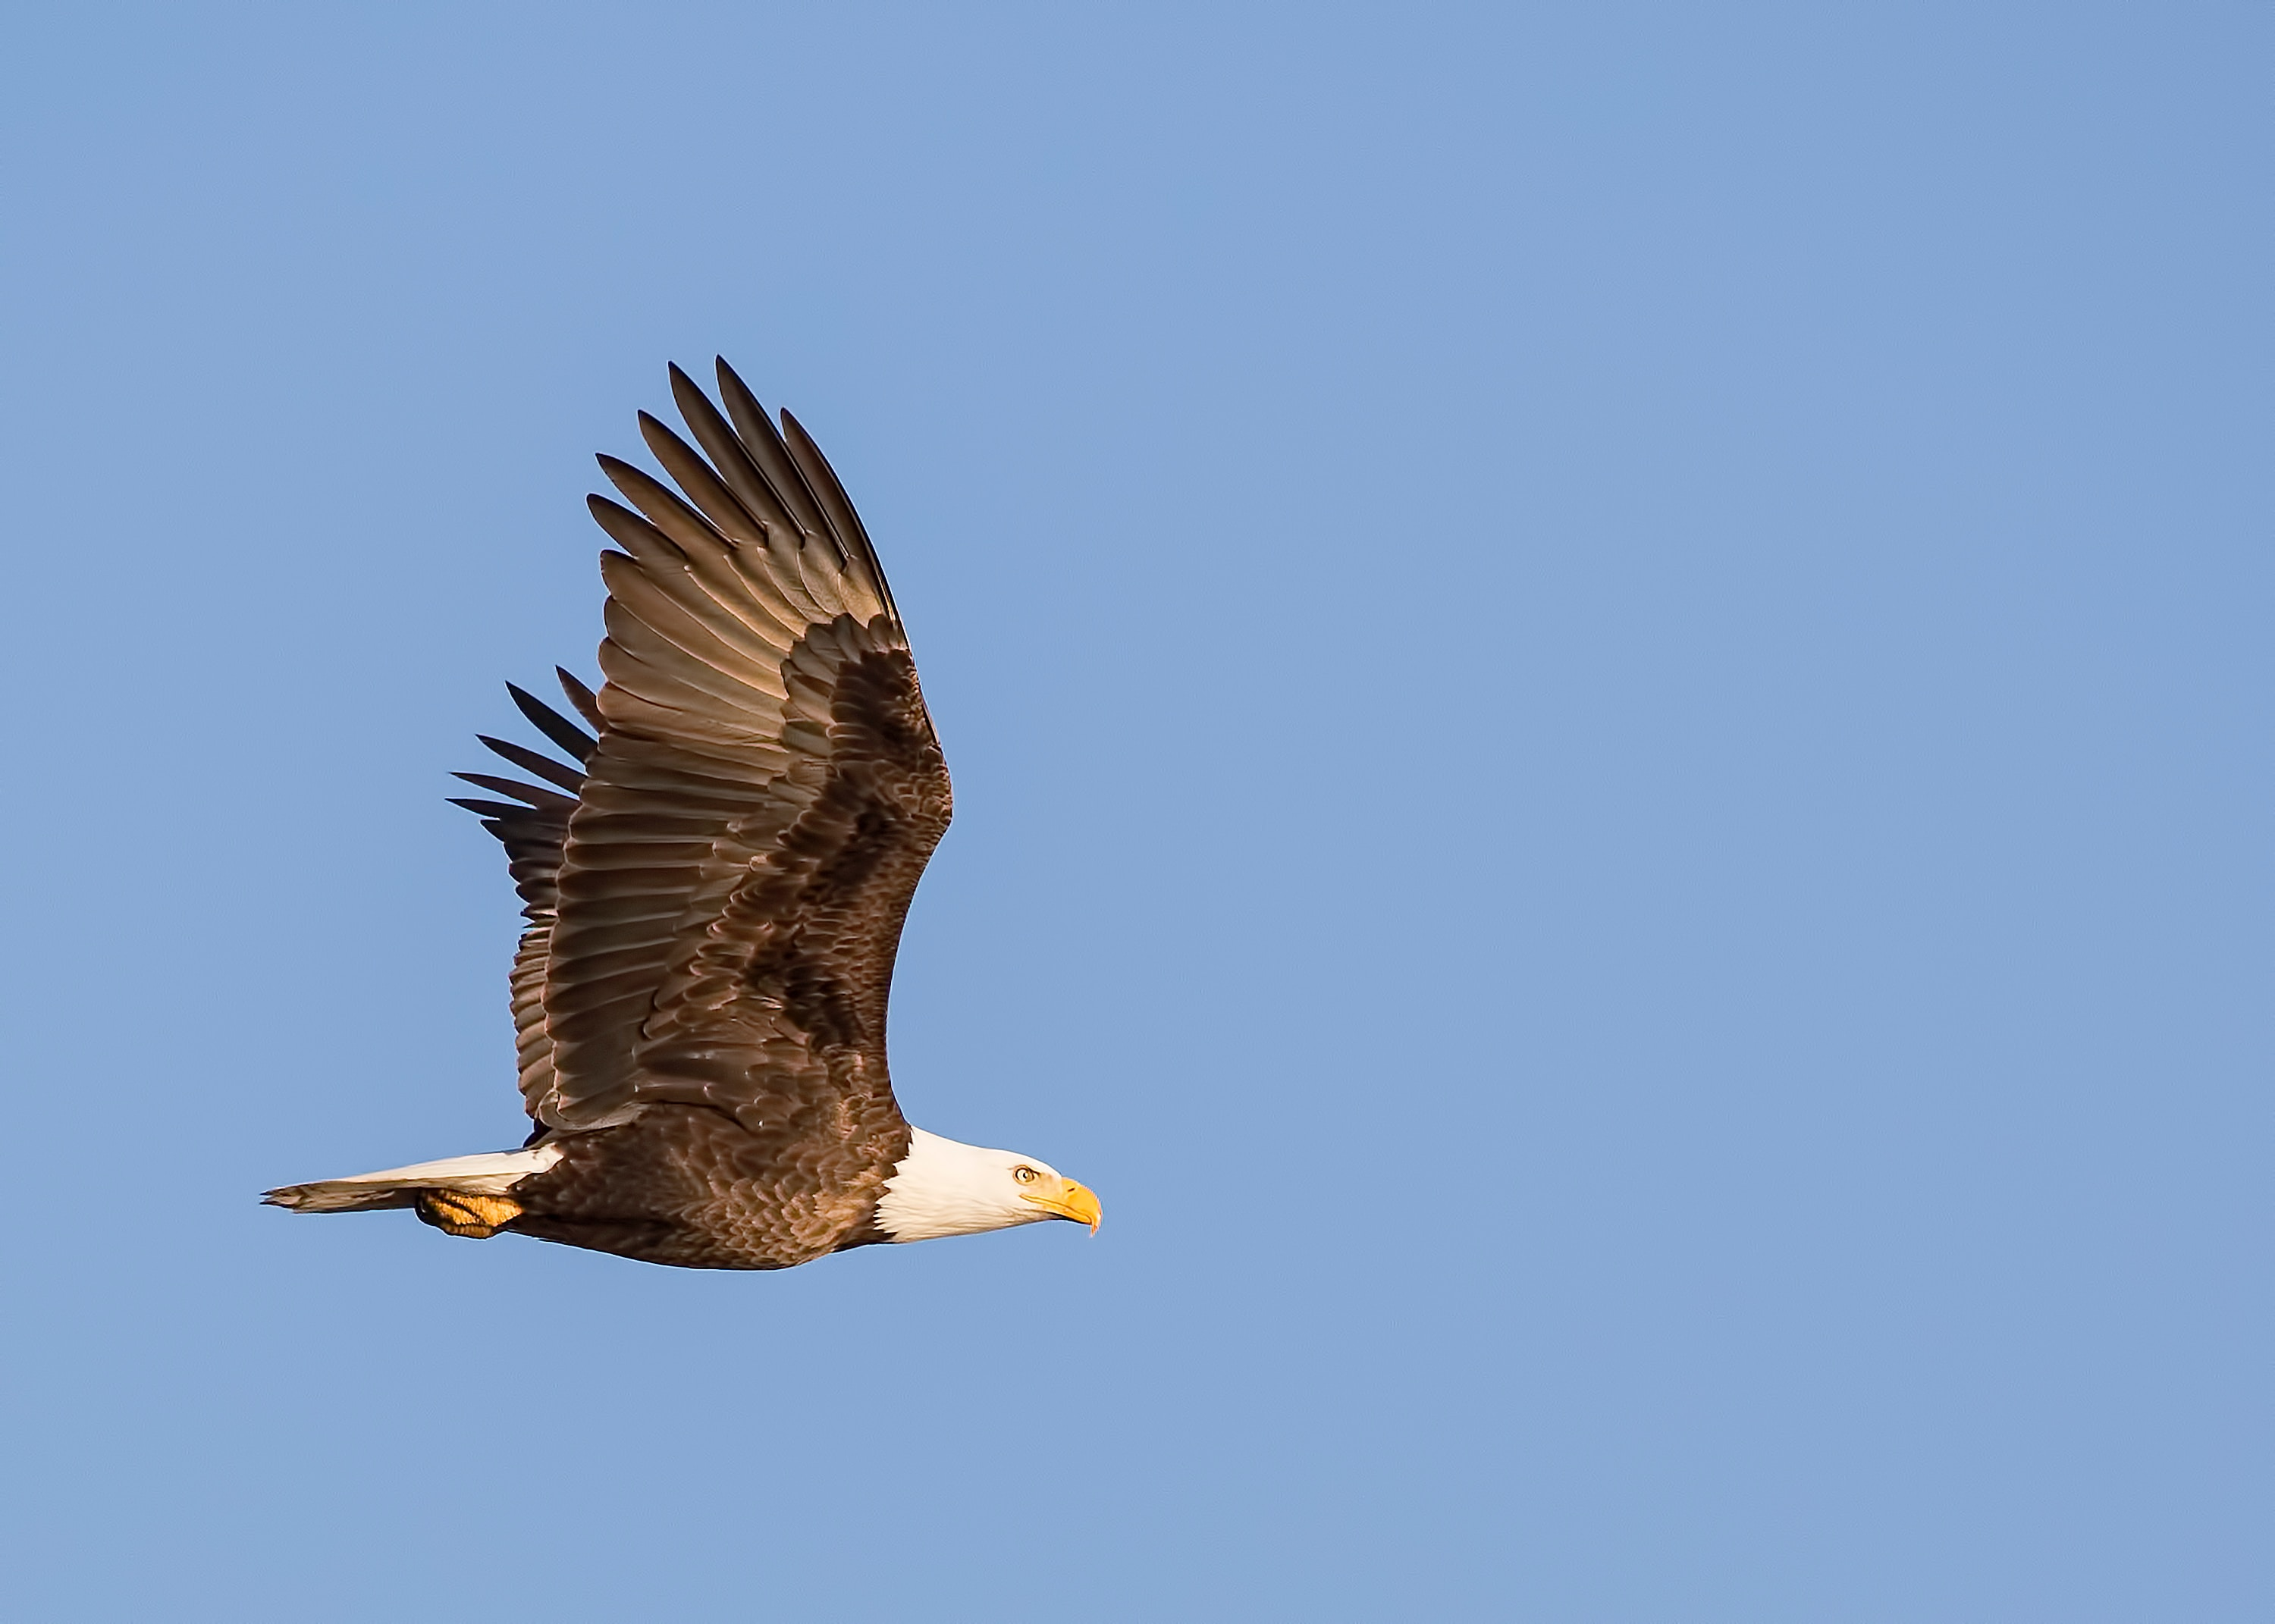 Bald eagle soaring through the air with a clear blue sky